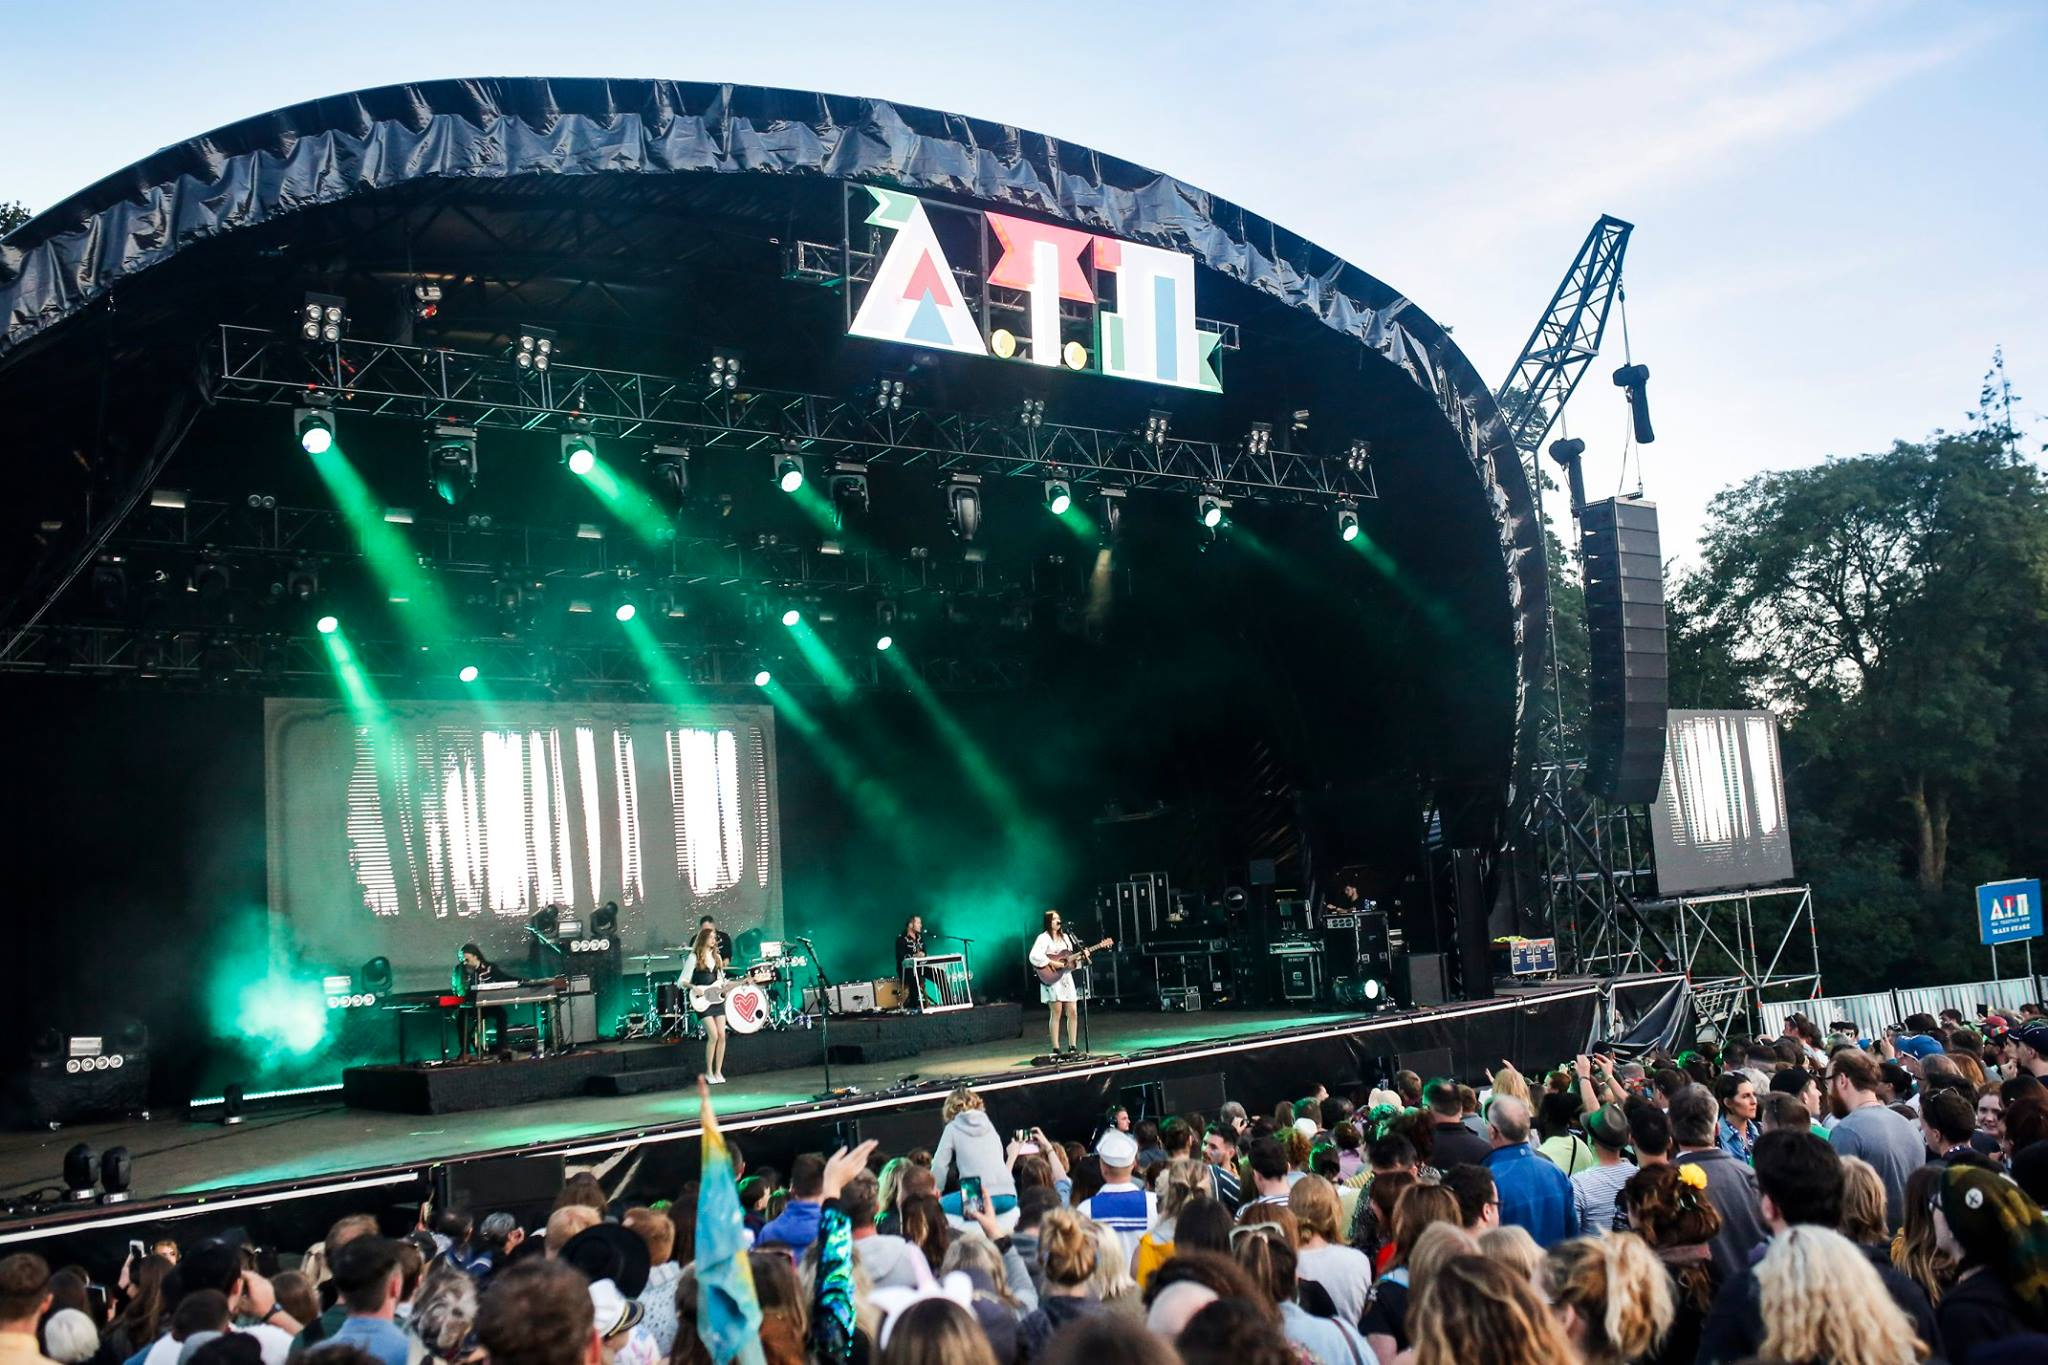 THE 10 BEST Annual Summer Events & Festivals in Ireland